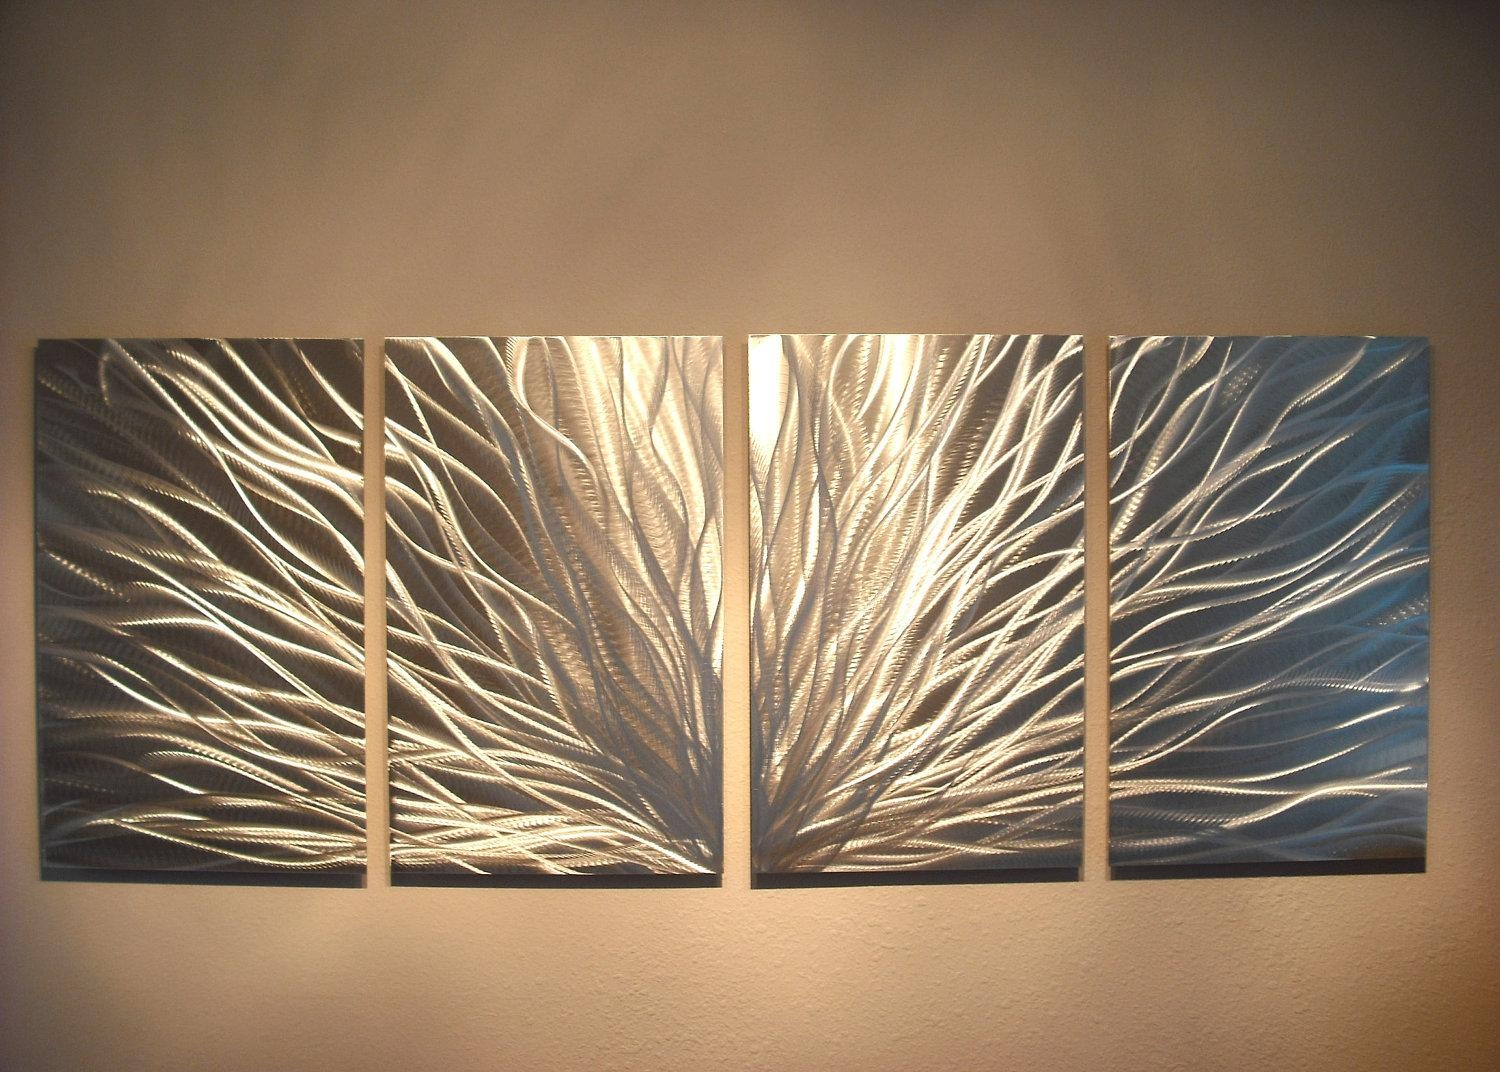 Radiance – Abstract Metal Wall Art Contemporary Modern Decor With Regard To Modern Glass Wall Art (View 9 of 20)